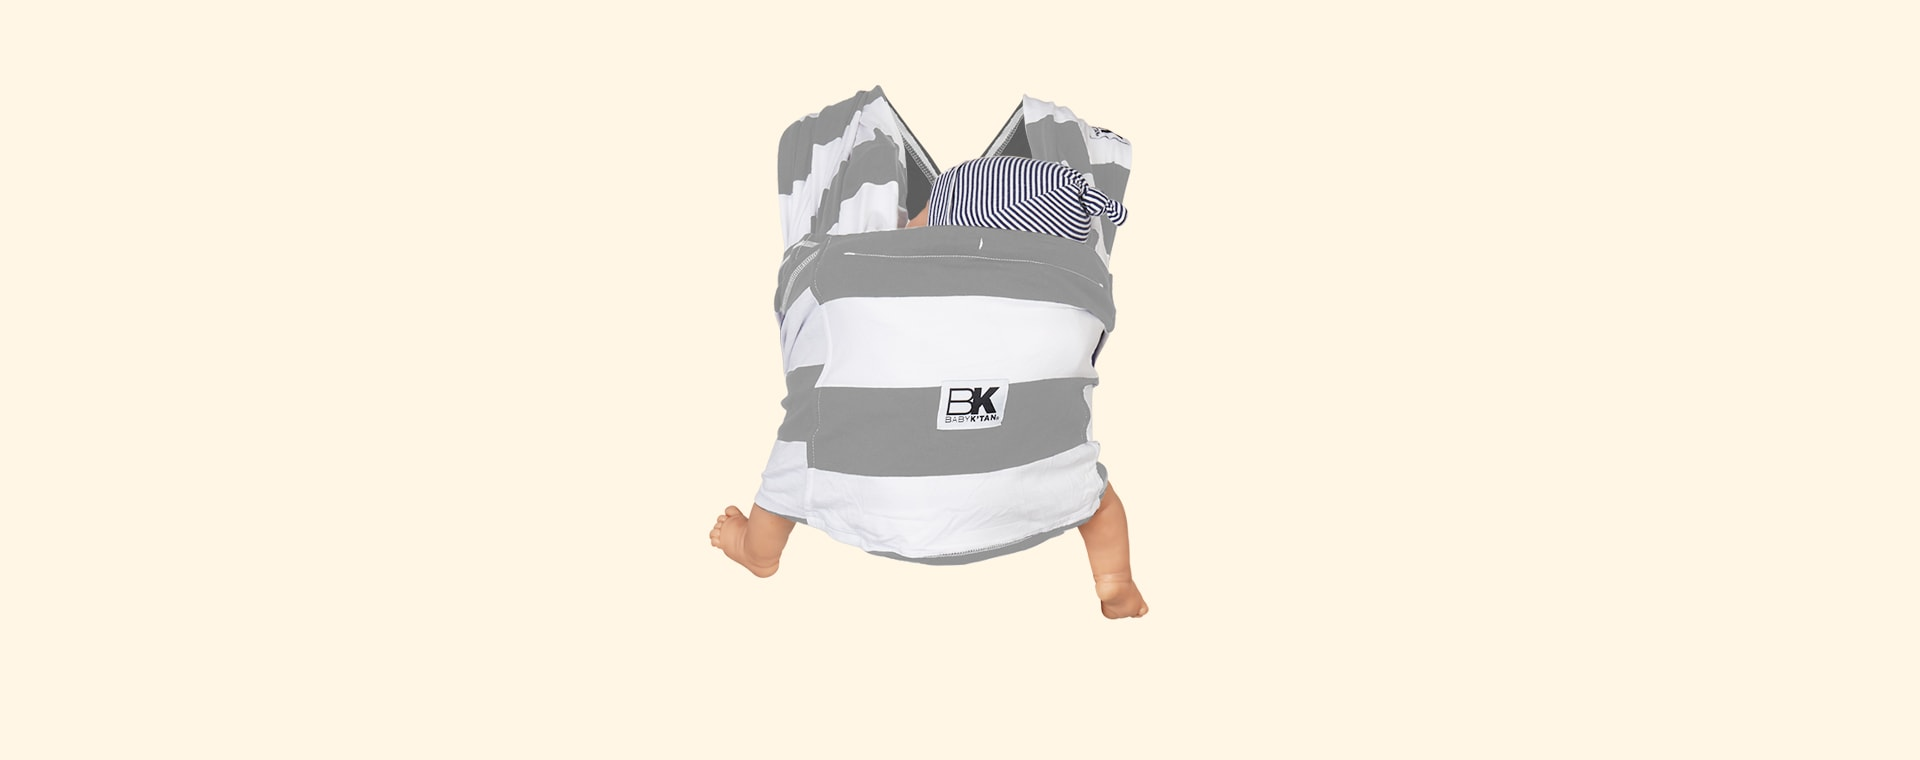 Charcoal Stripe Baby K'tan Original Printed Wrap Carrier